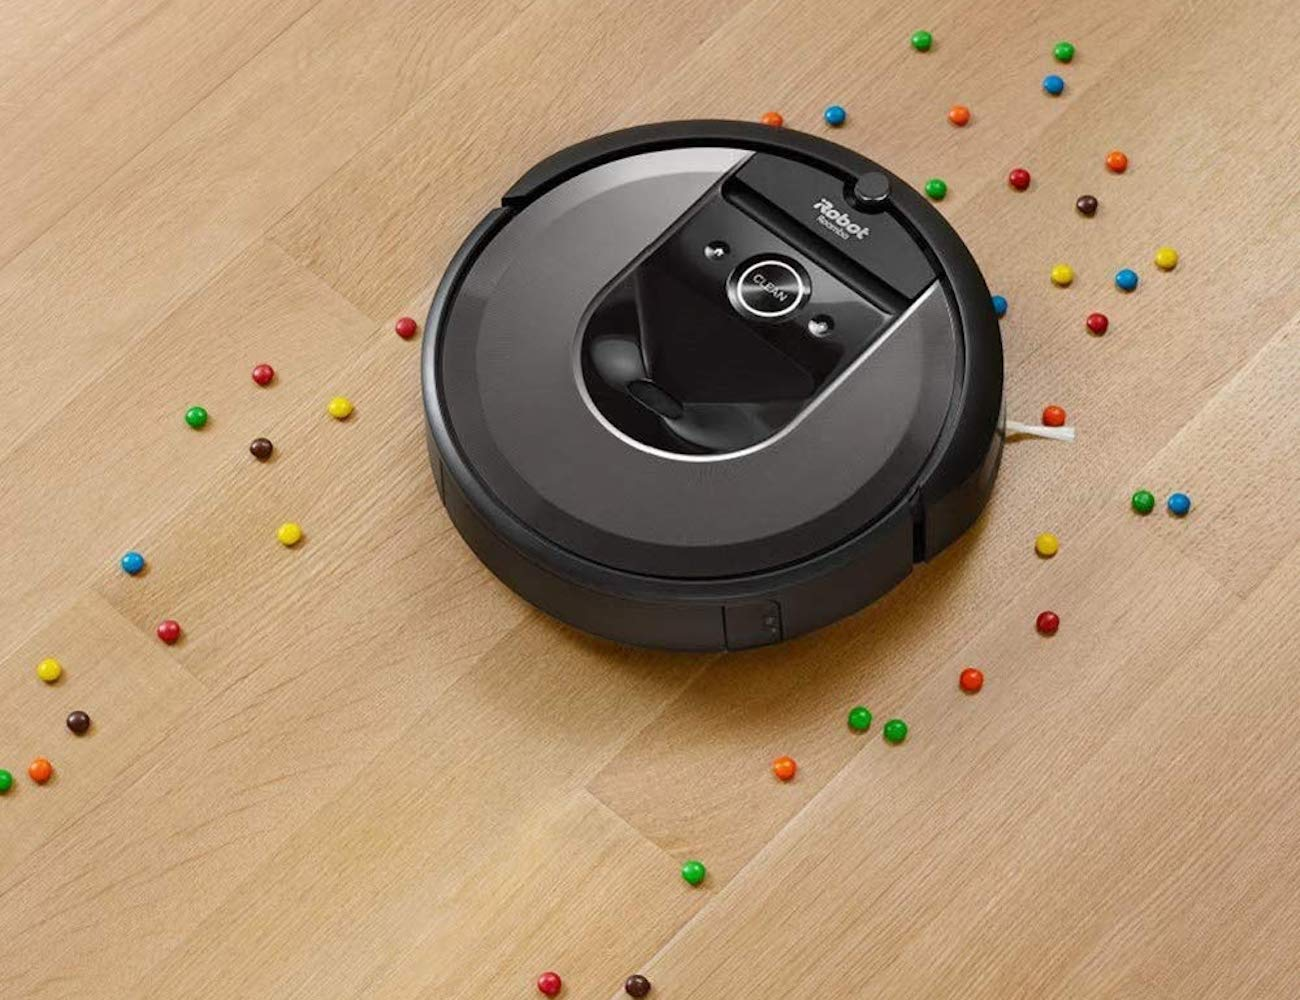 iRobot Roomba i7+ Wi-Fi Connected Robot Automatic Dirt Disposal Vacuum leaves nothing behind